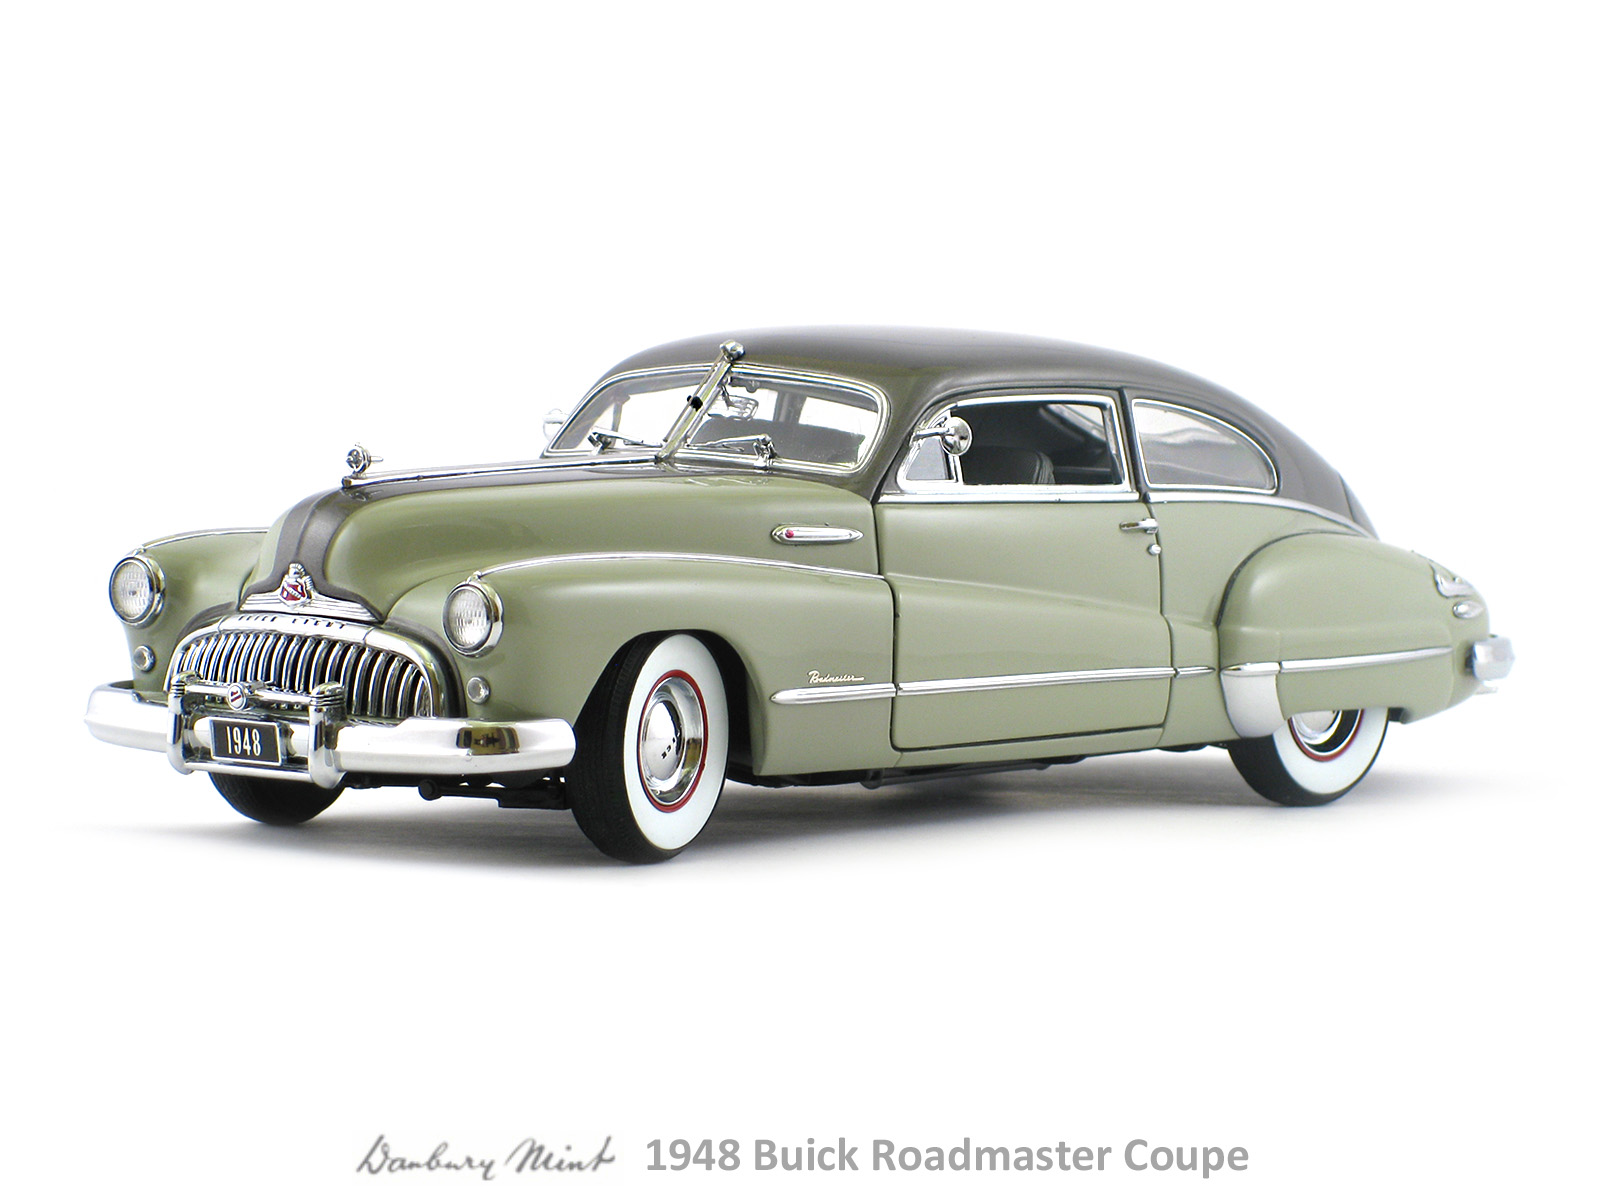 Ford Of Franklin >> 1948 Buick Roadmaster Coupe Danbury Mint